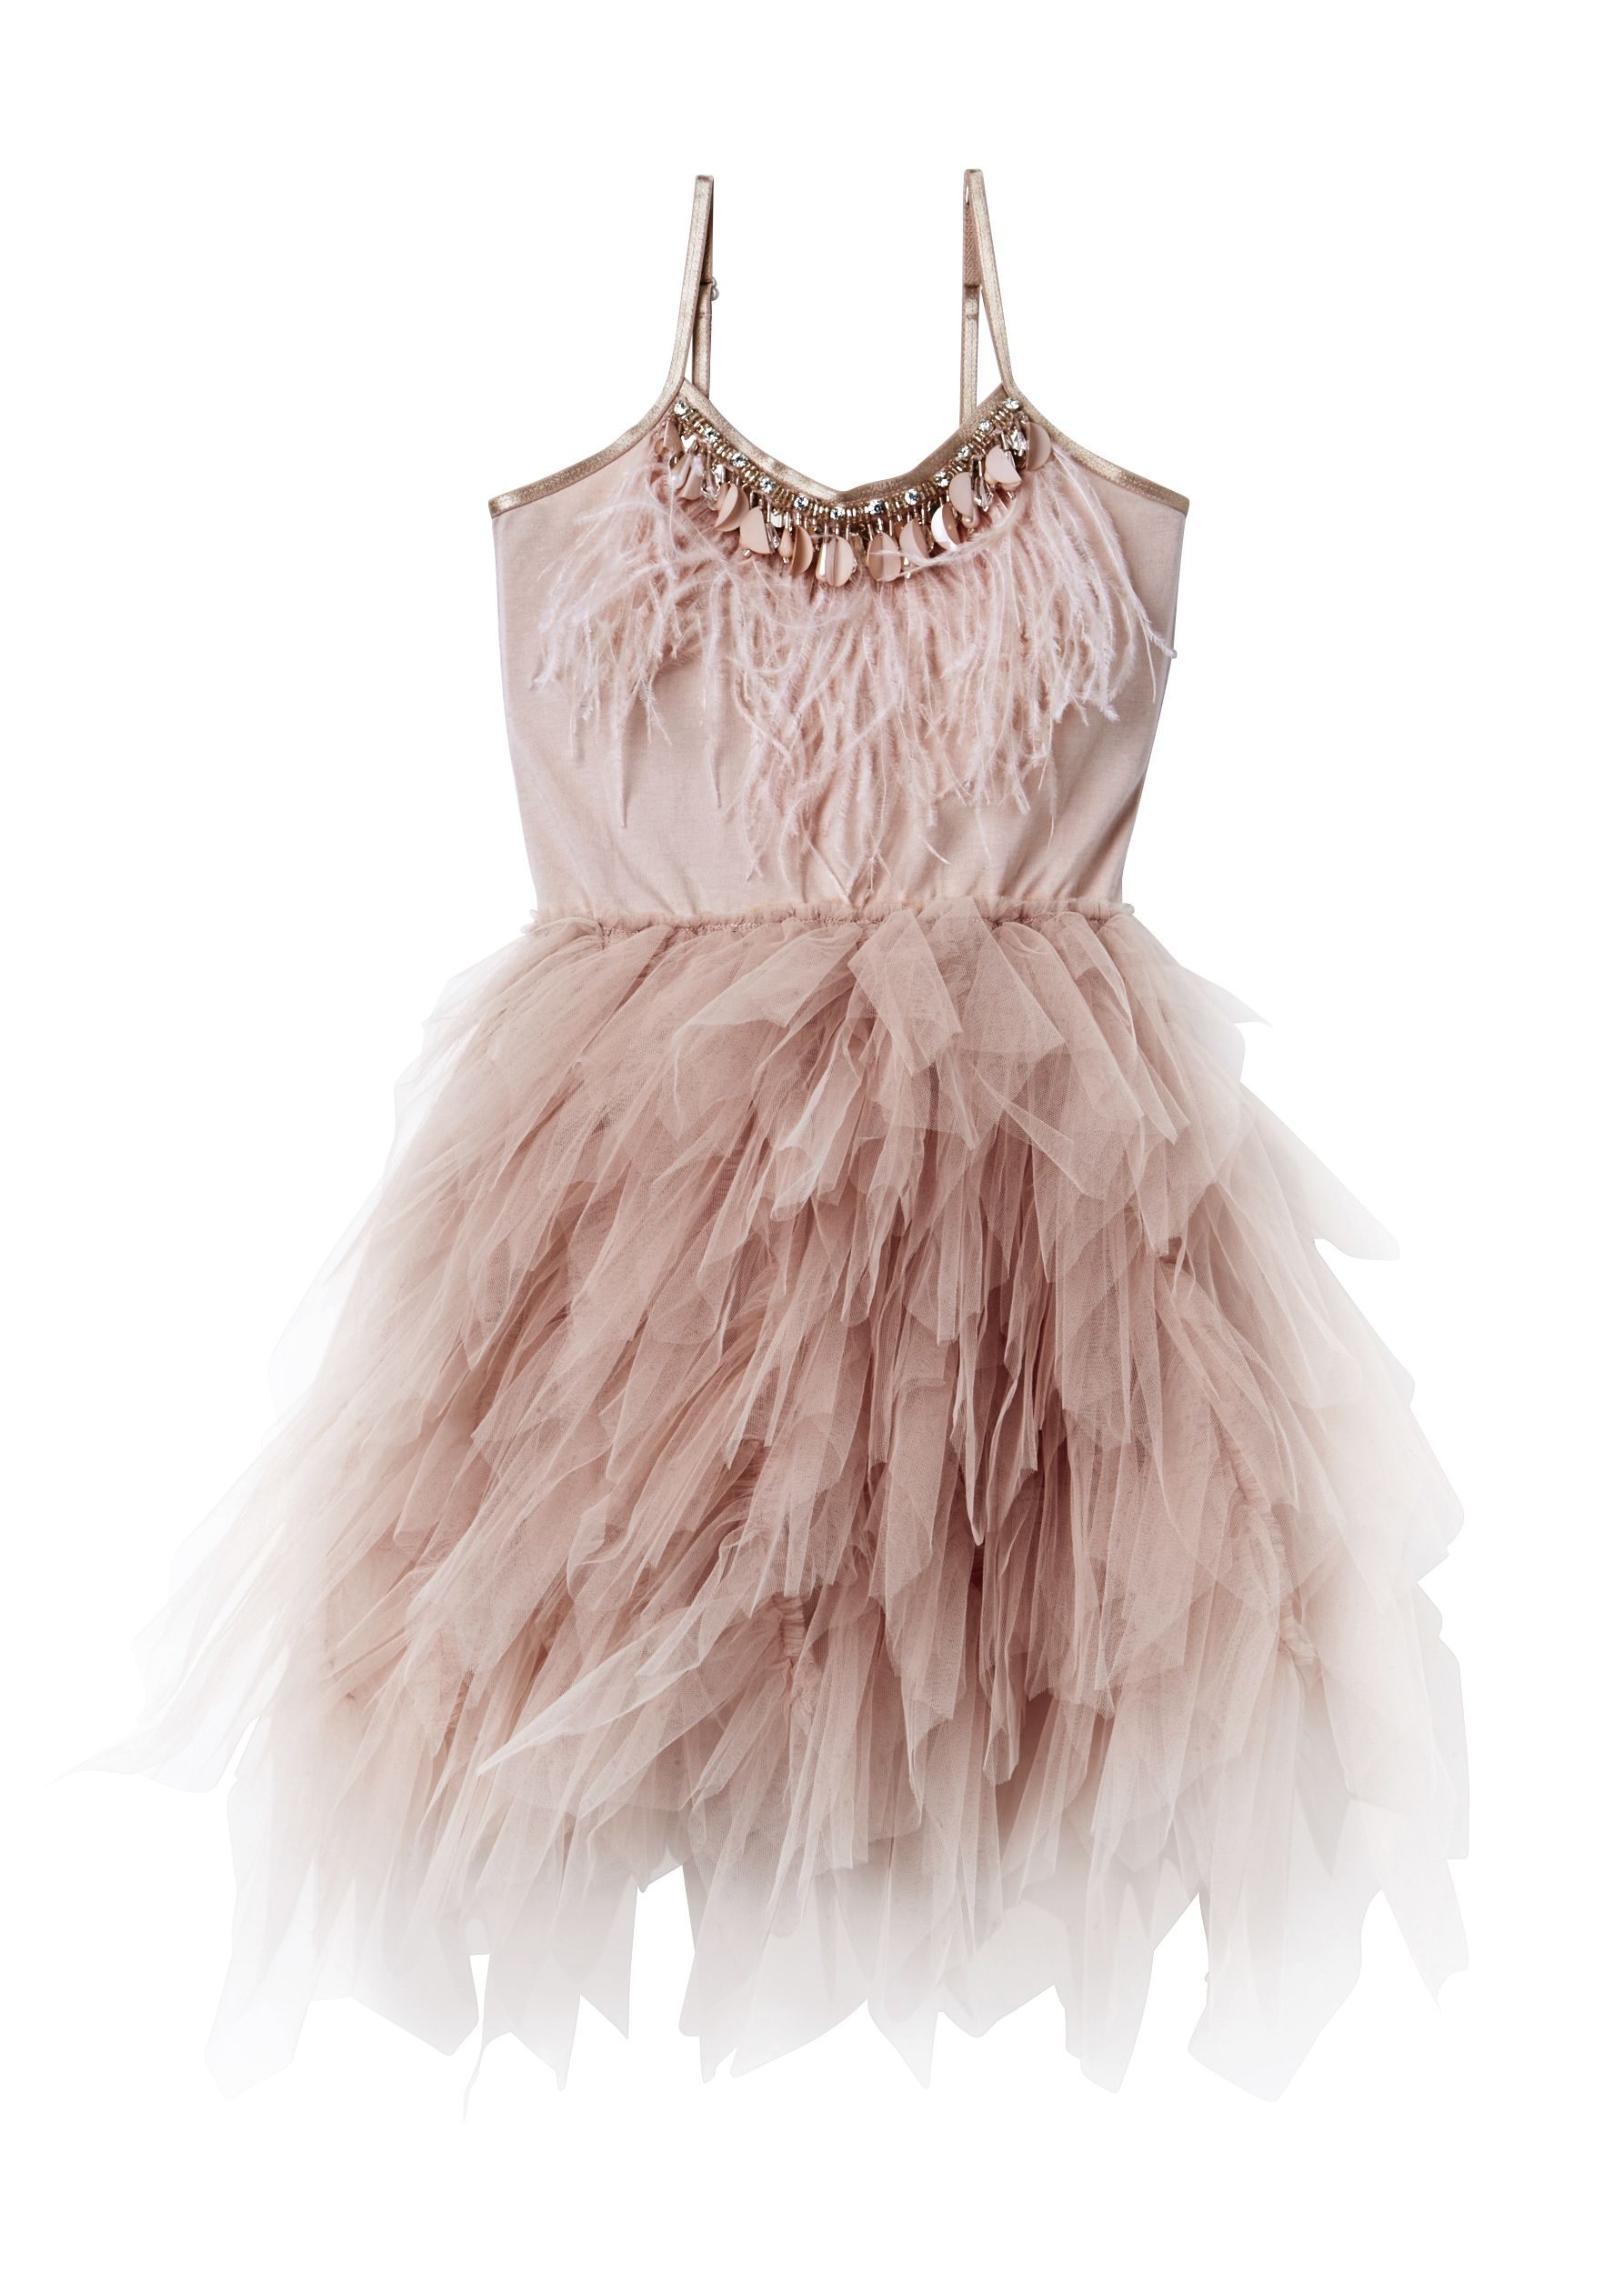 Tutu Du Monde Swan Queen Tutu Dress – Nude